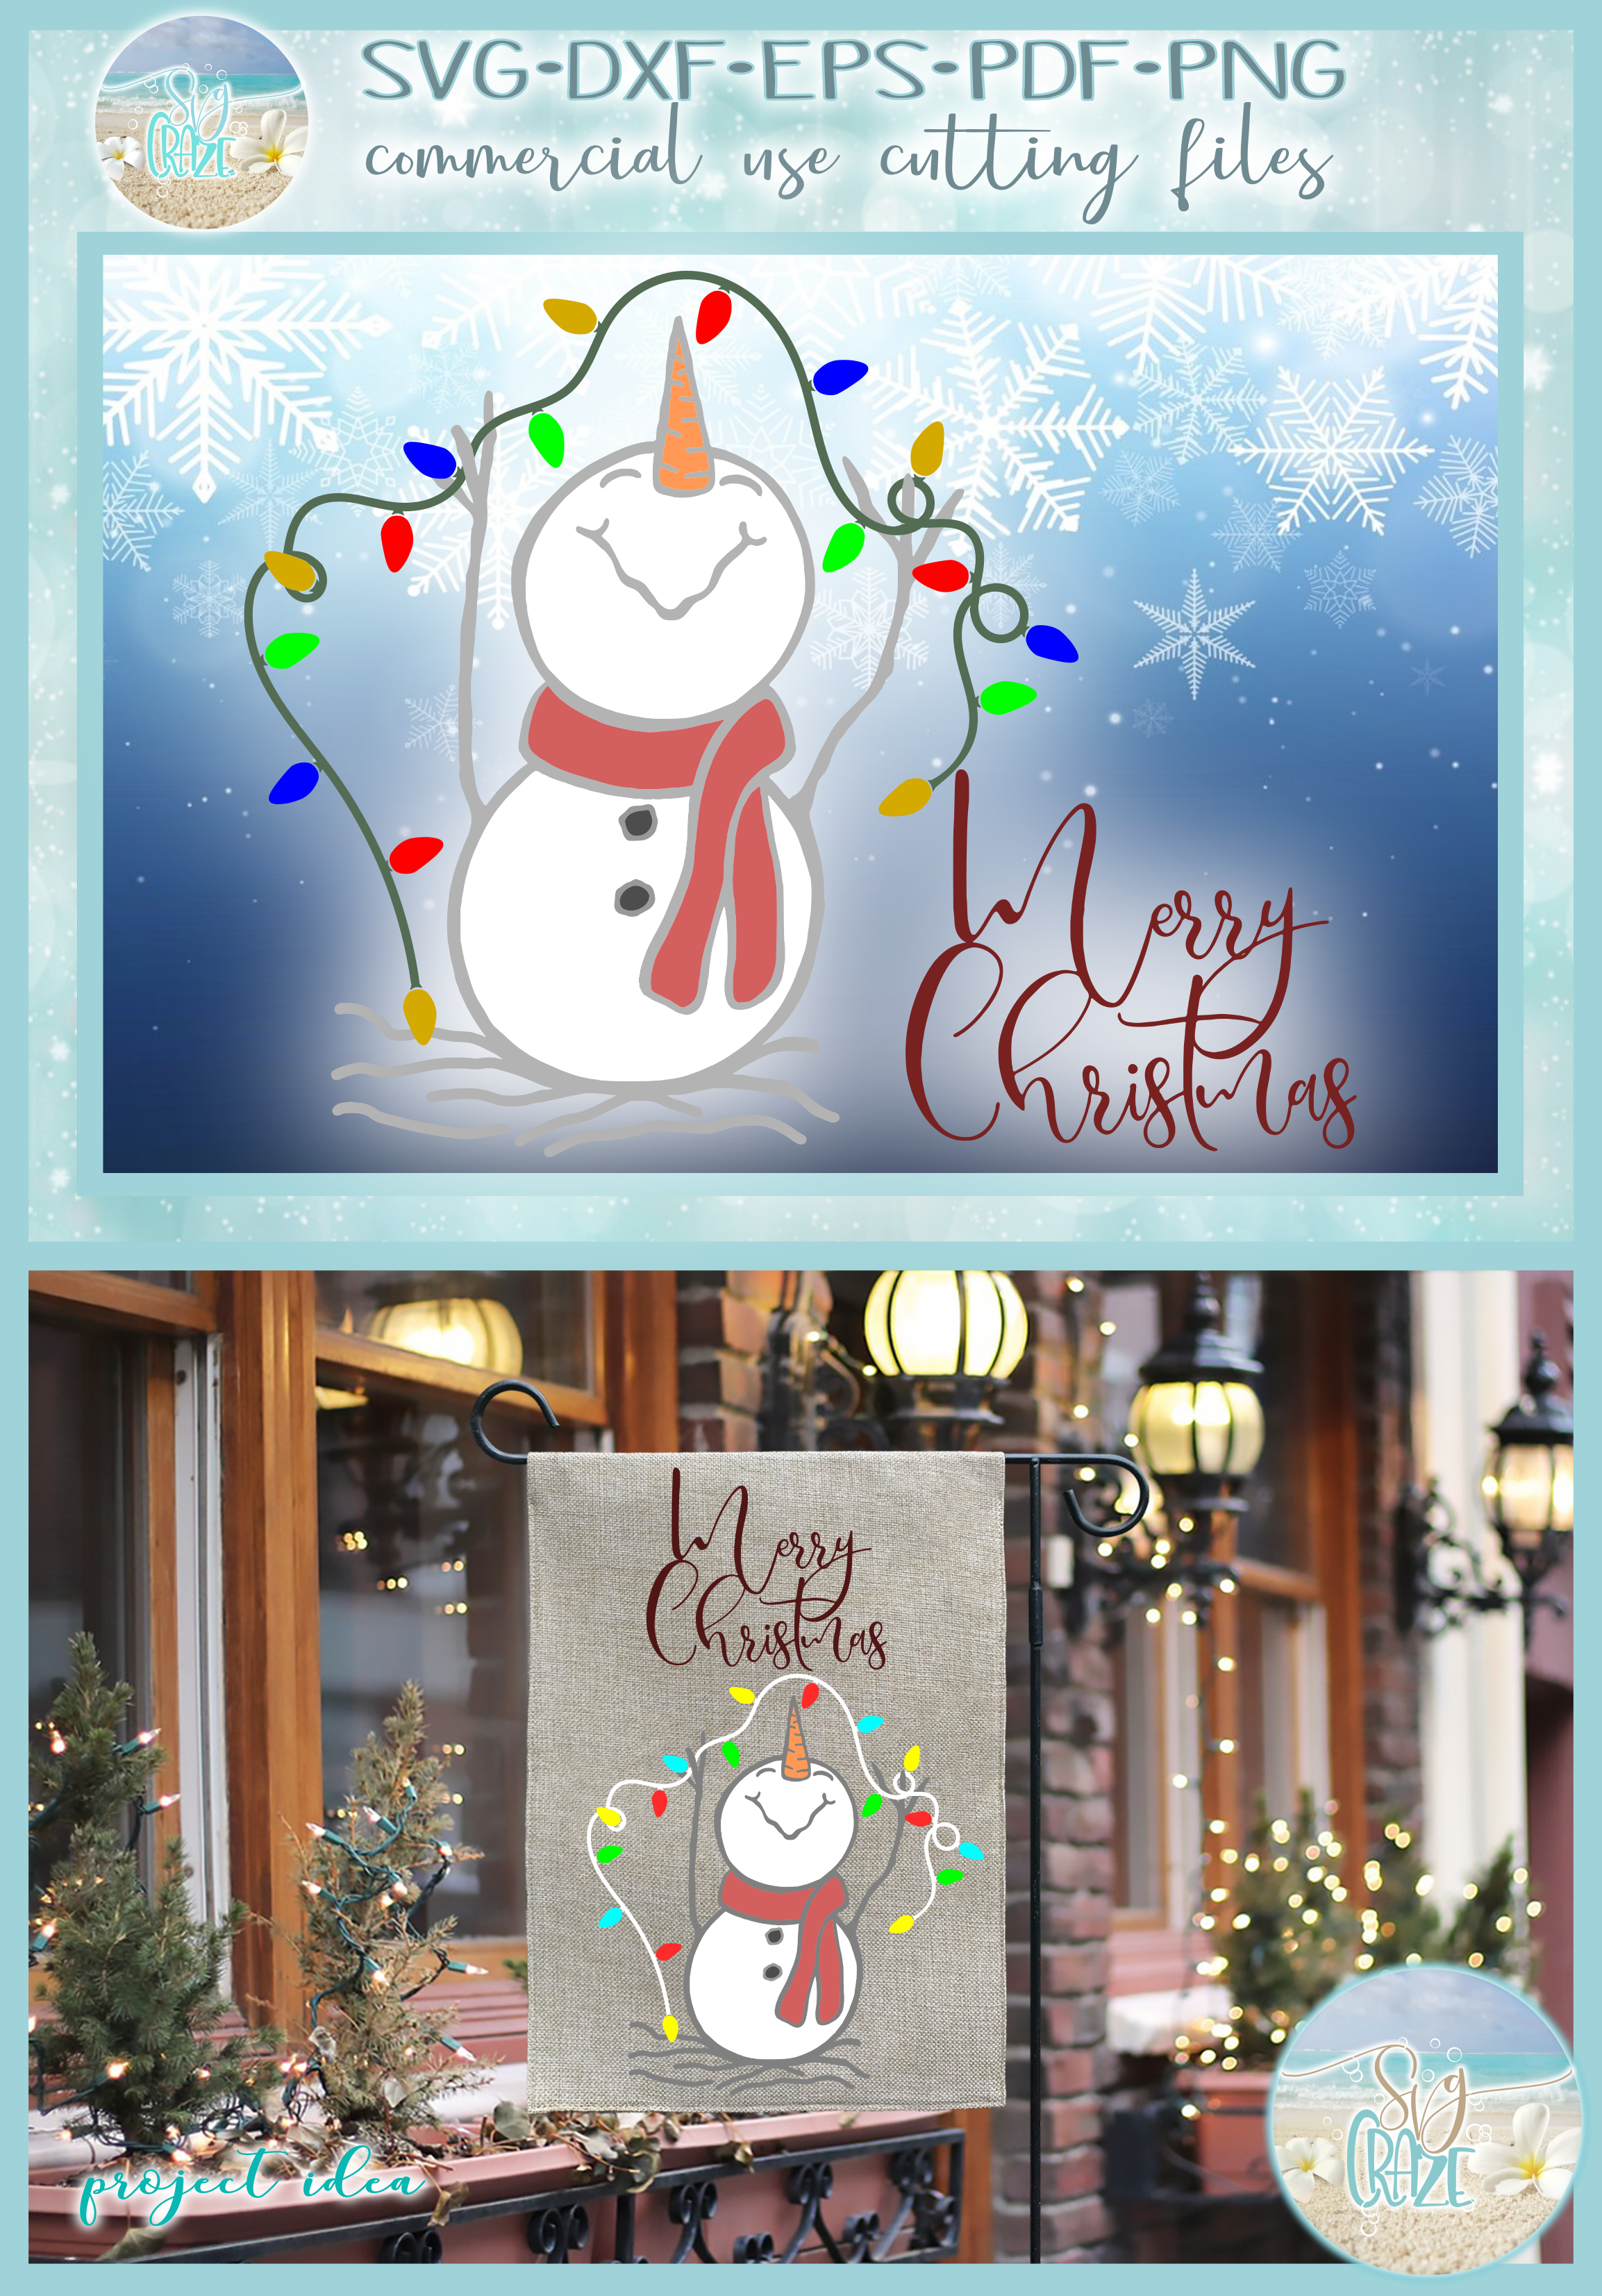 Happy Snowman with Lights Merry Christmas SVG example image 4